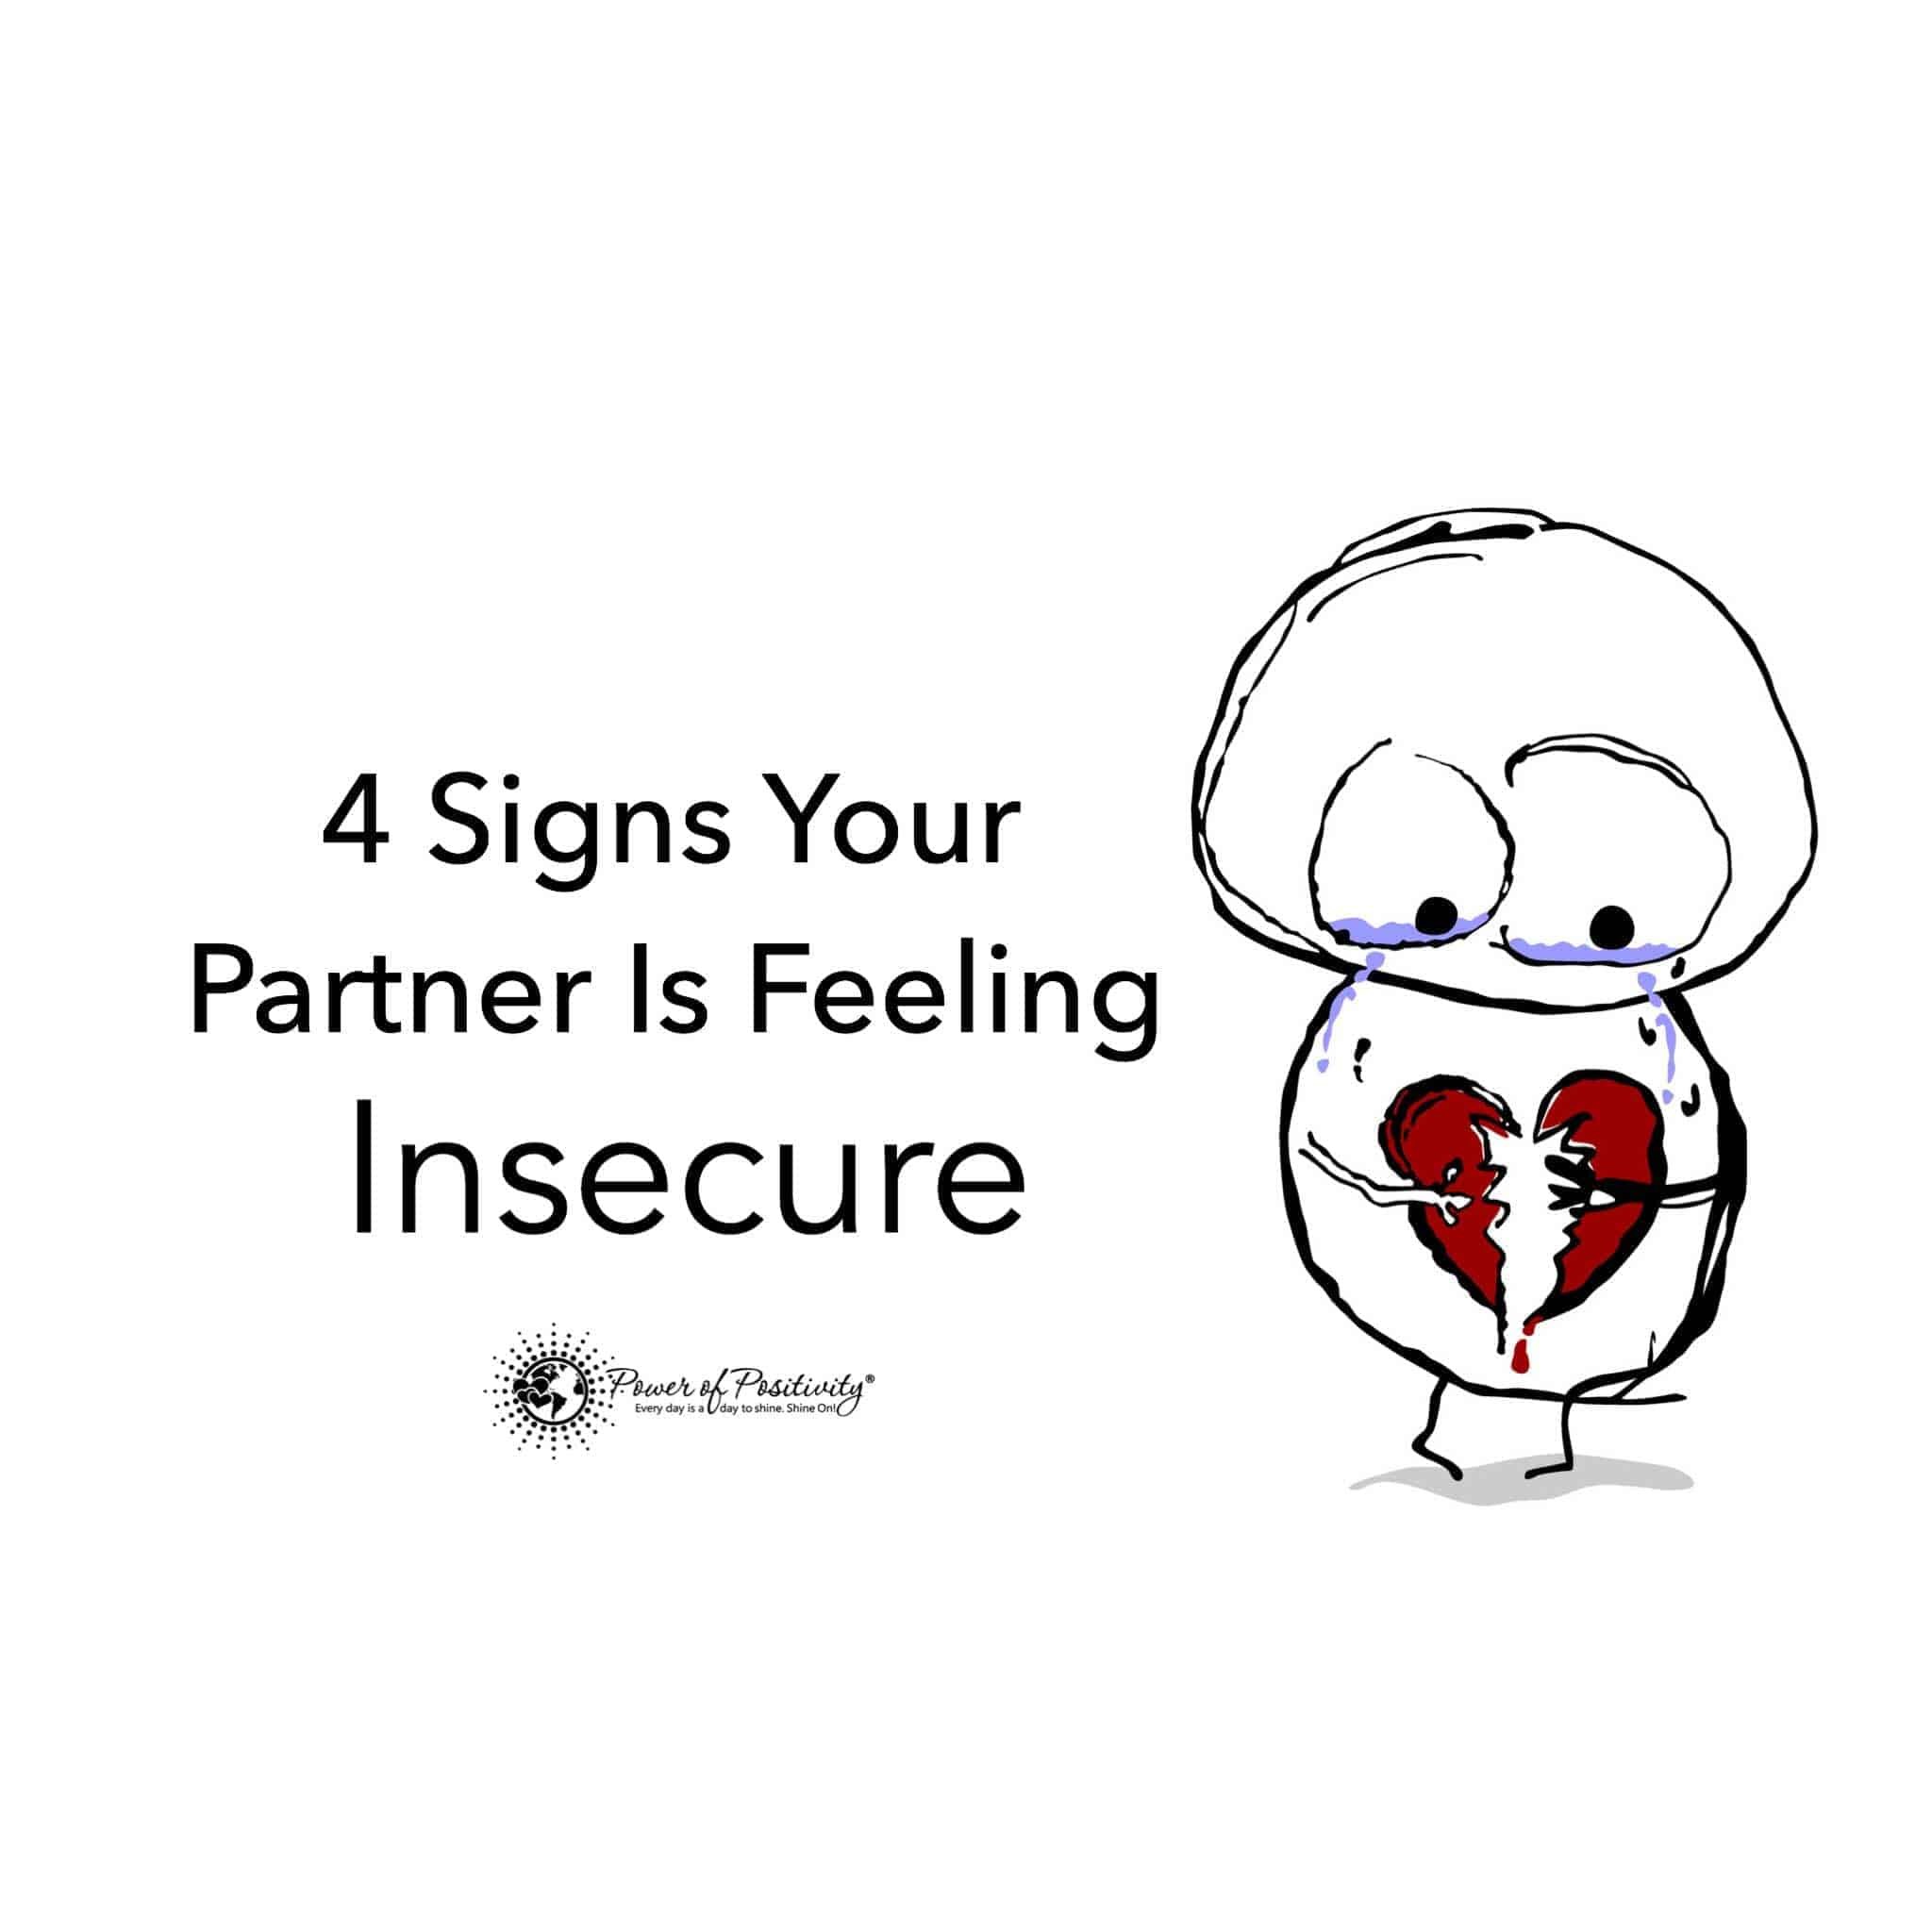 Feeling insecure in relationship